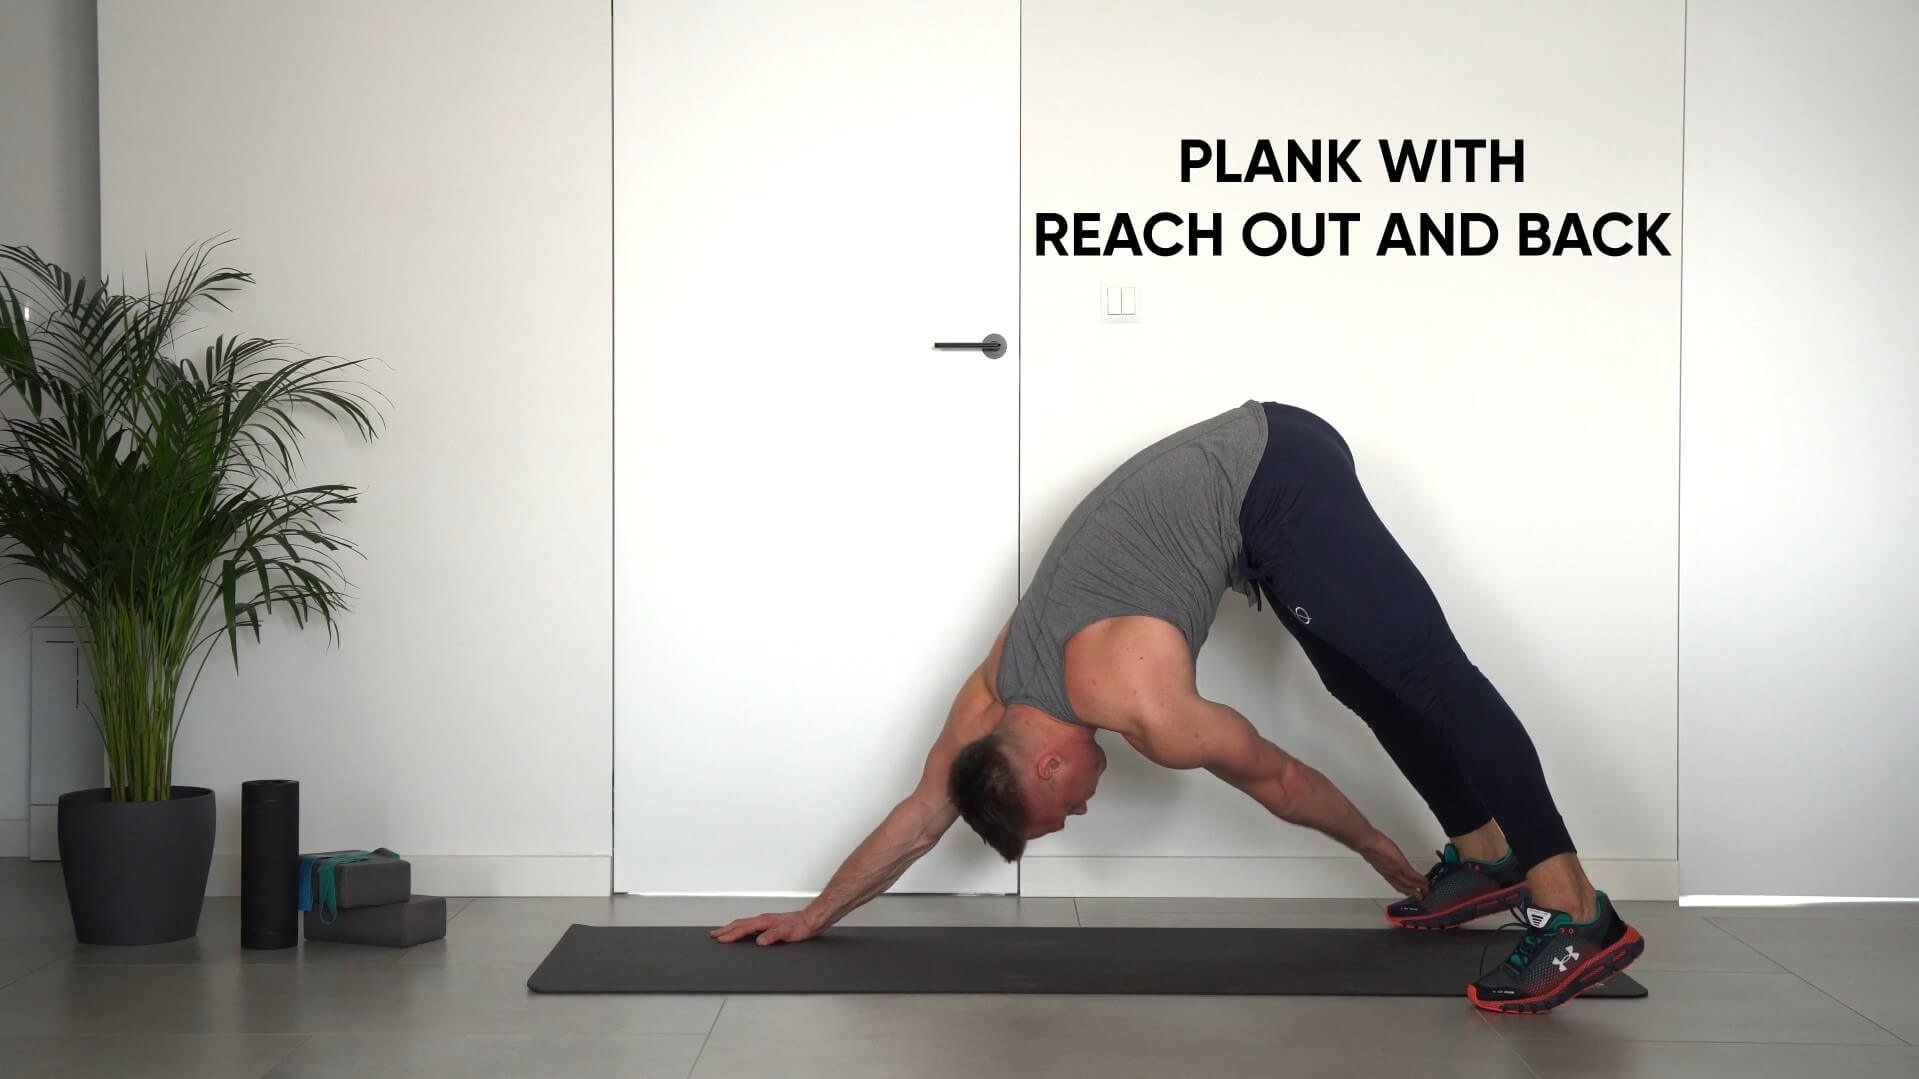 Plank with reach out and back